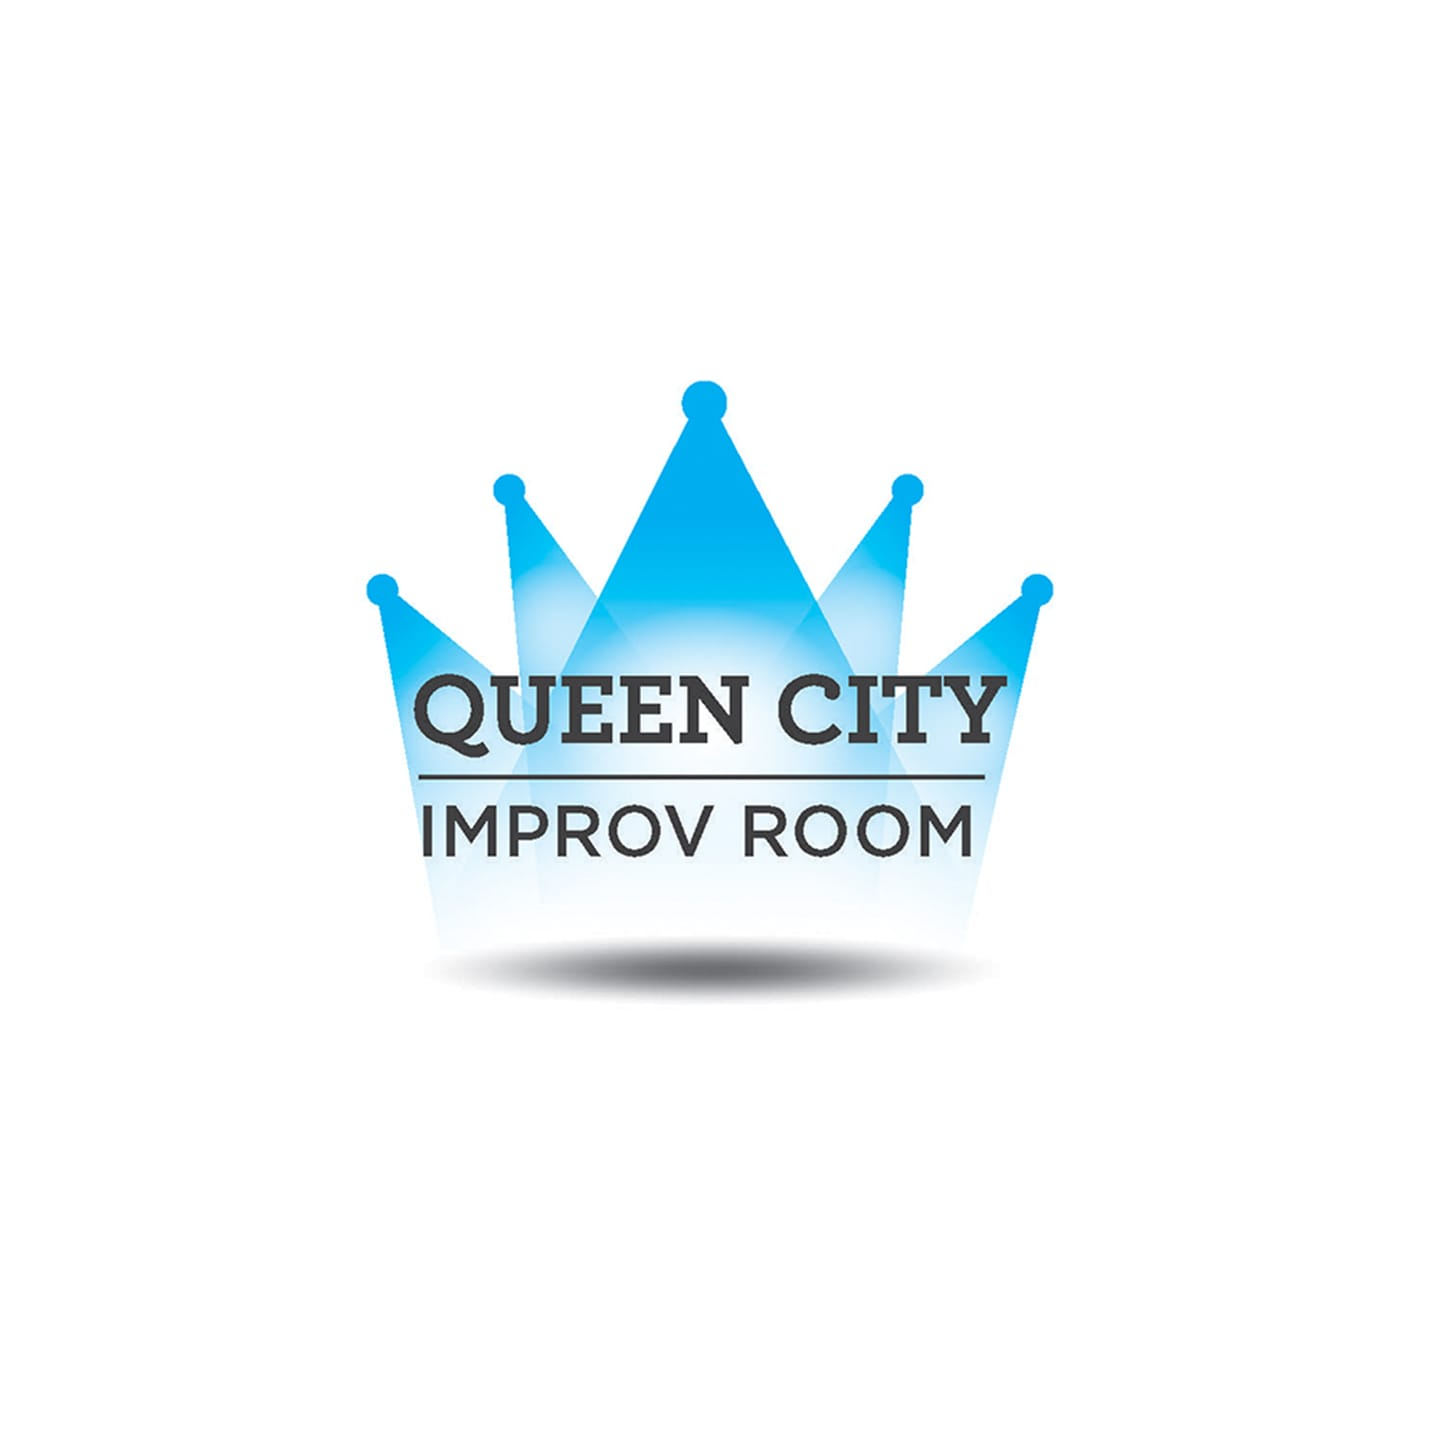 Queen City Improv Room: Family Friendly Participation